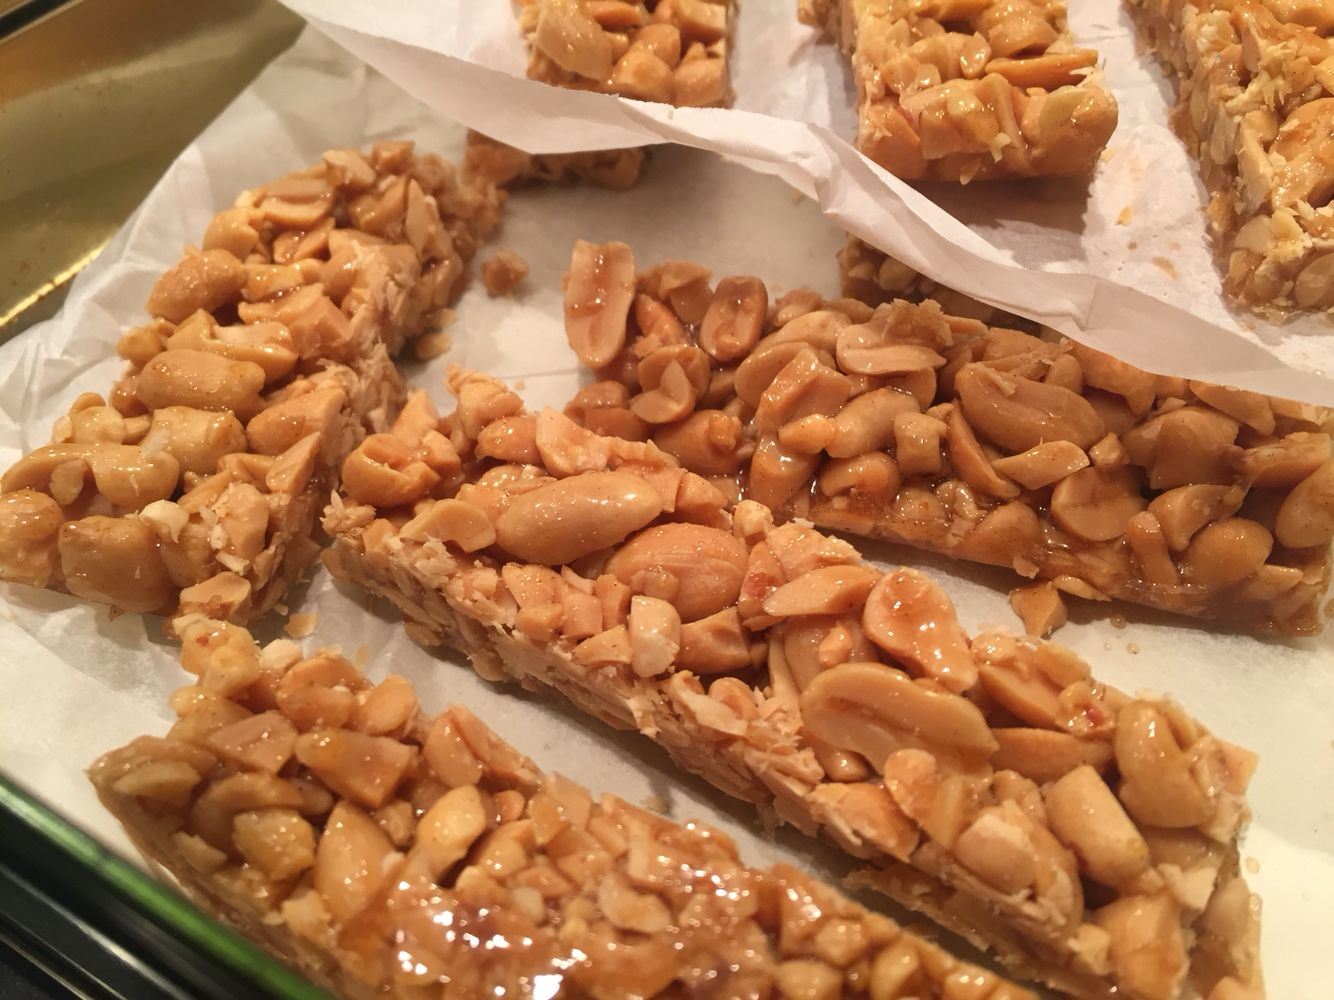 Home made peanut crunch bars for some energy without added sugar